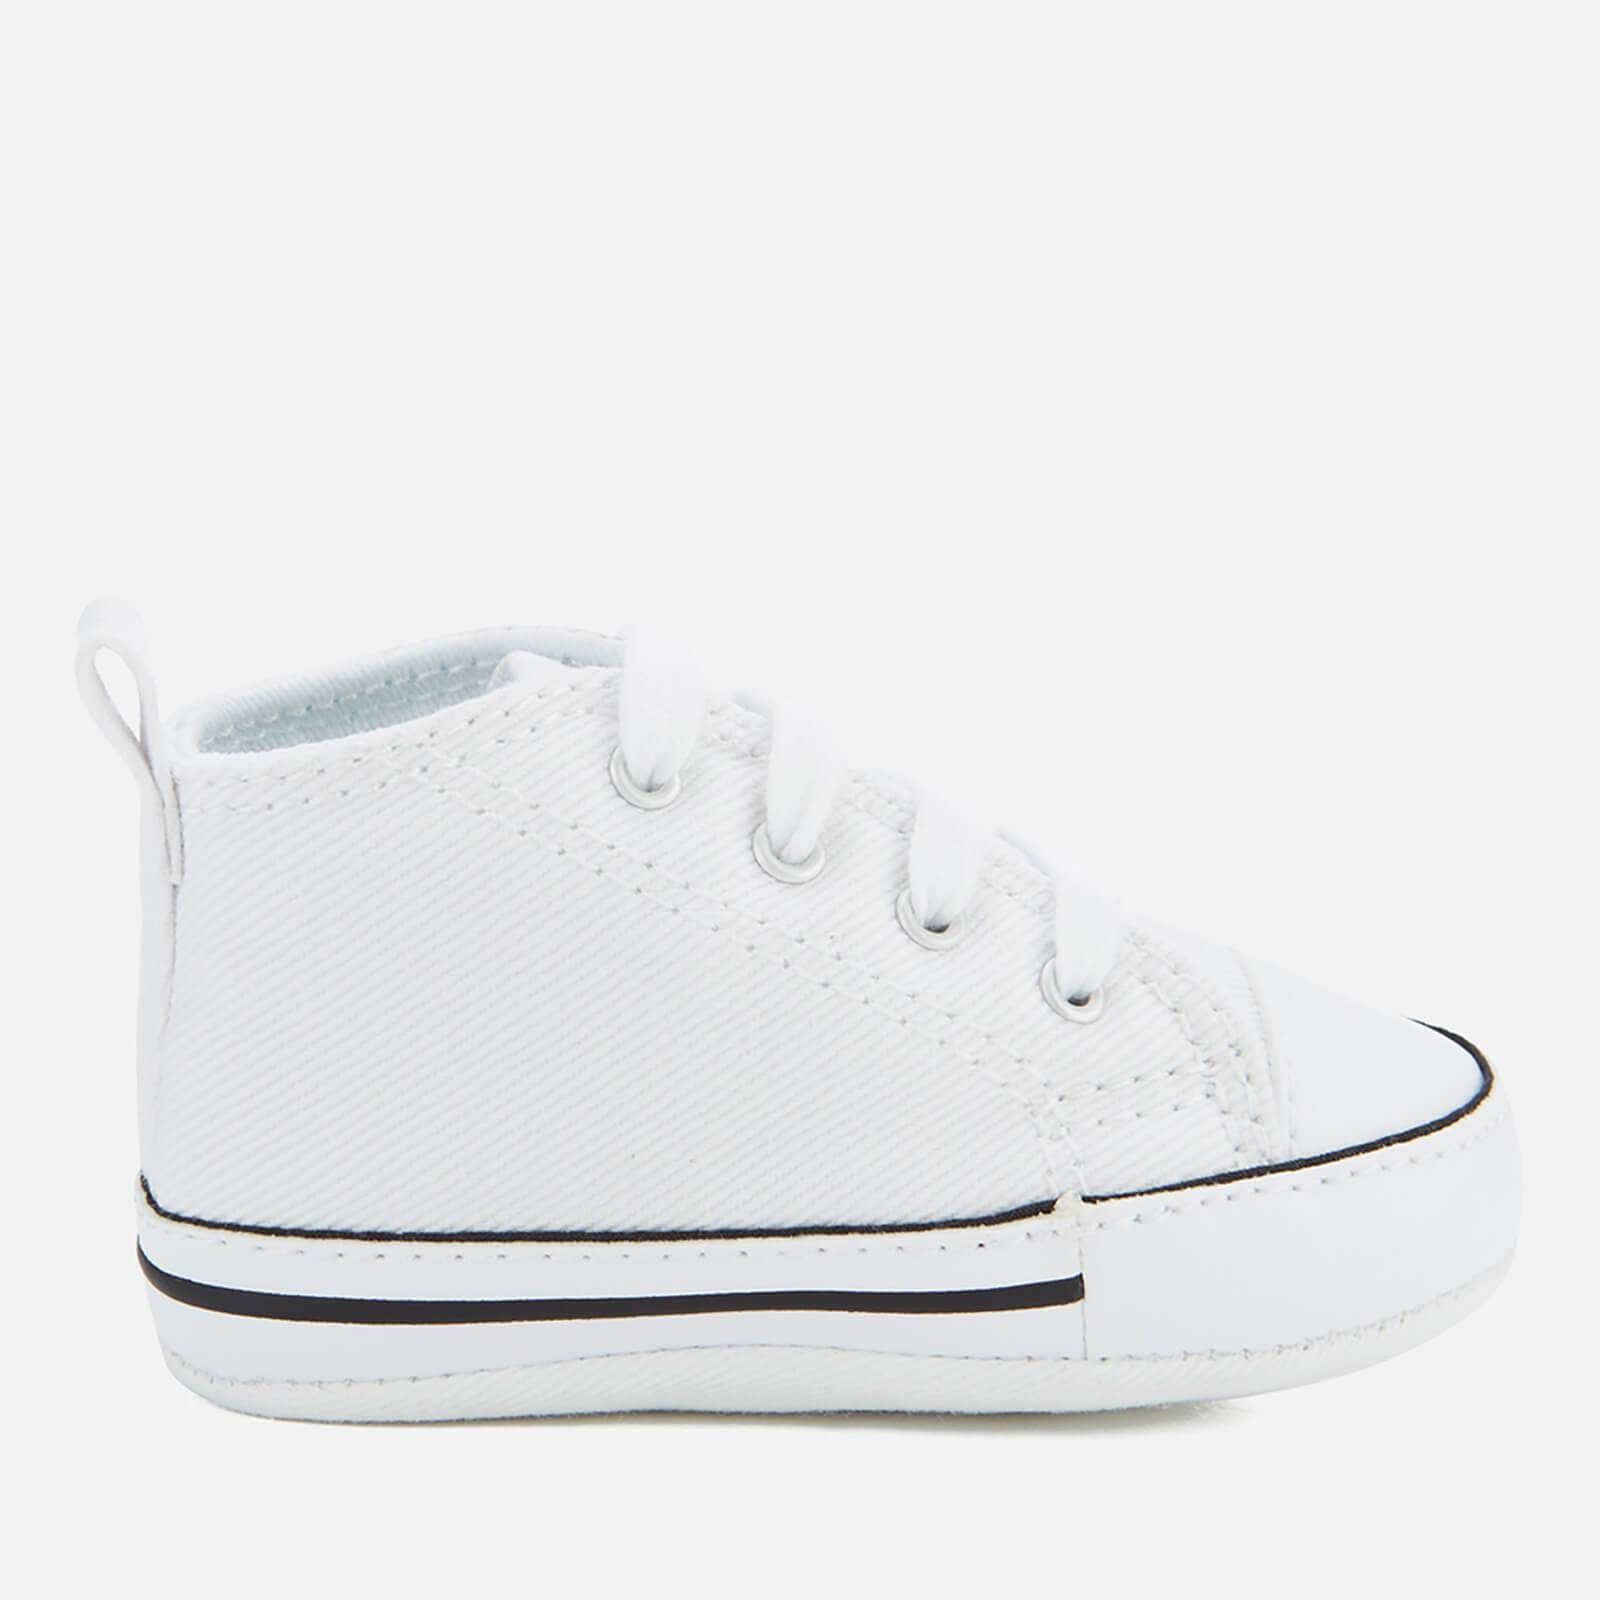 Converse Babies Chuck Taylor First Star Hi-Top Trainers - White - UK 1 Baby